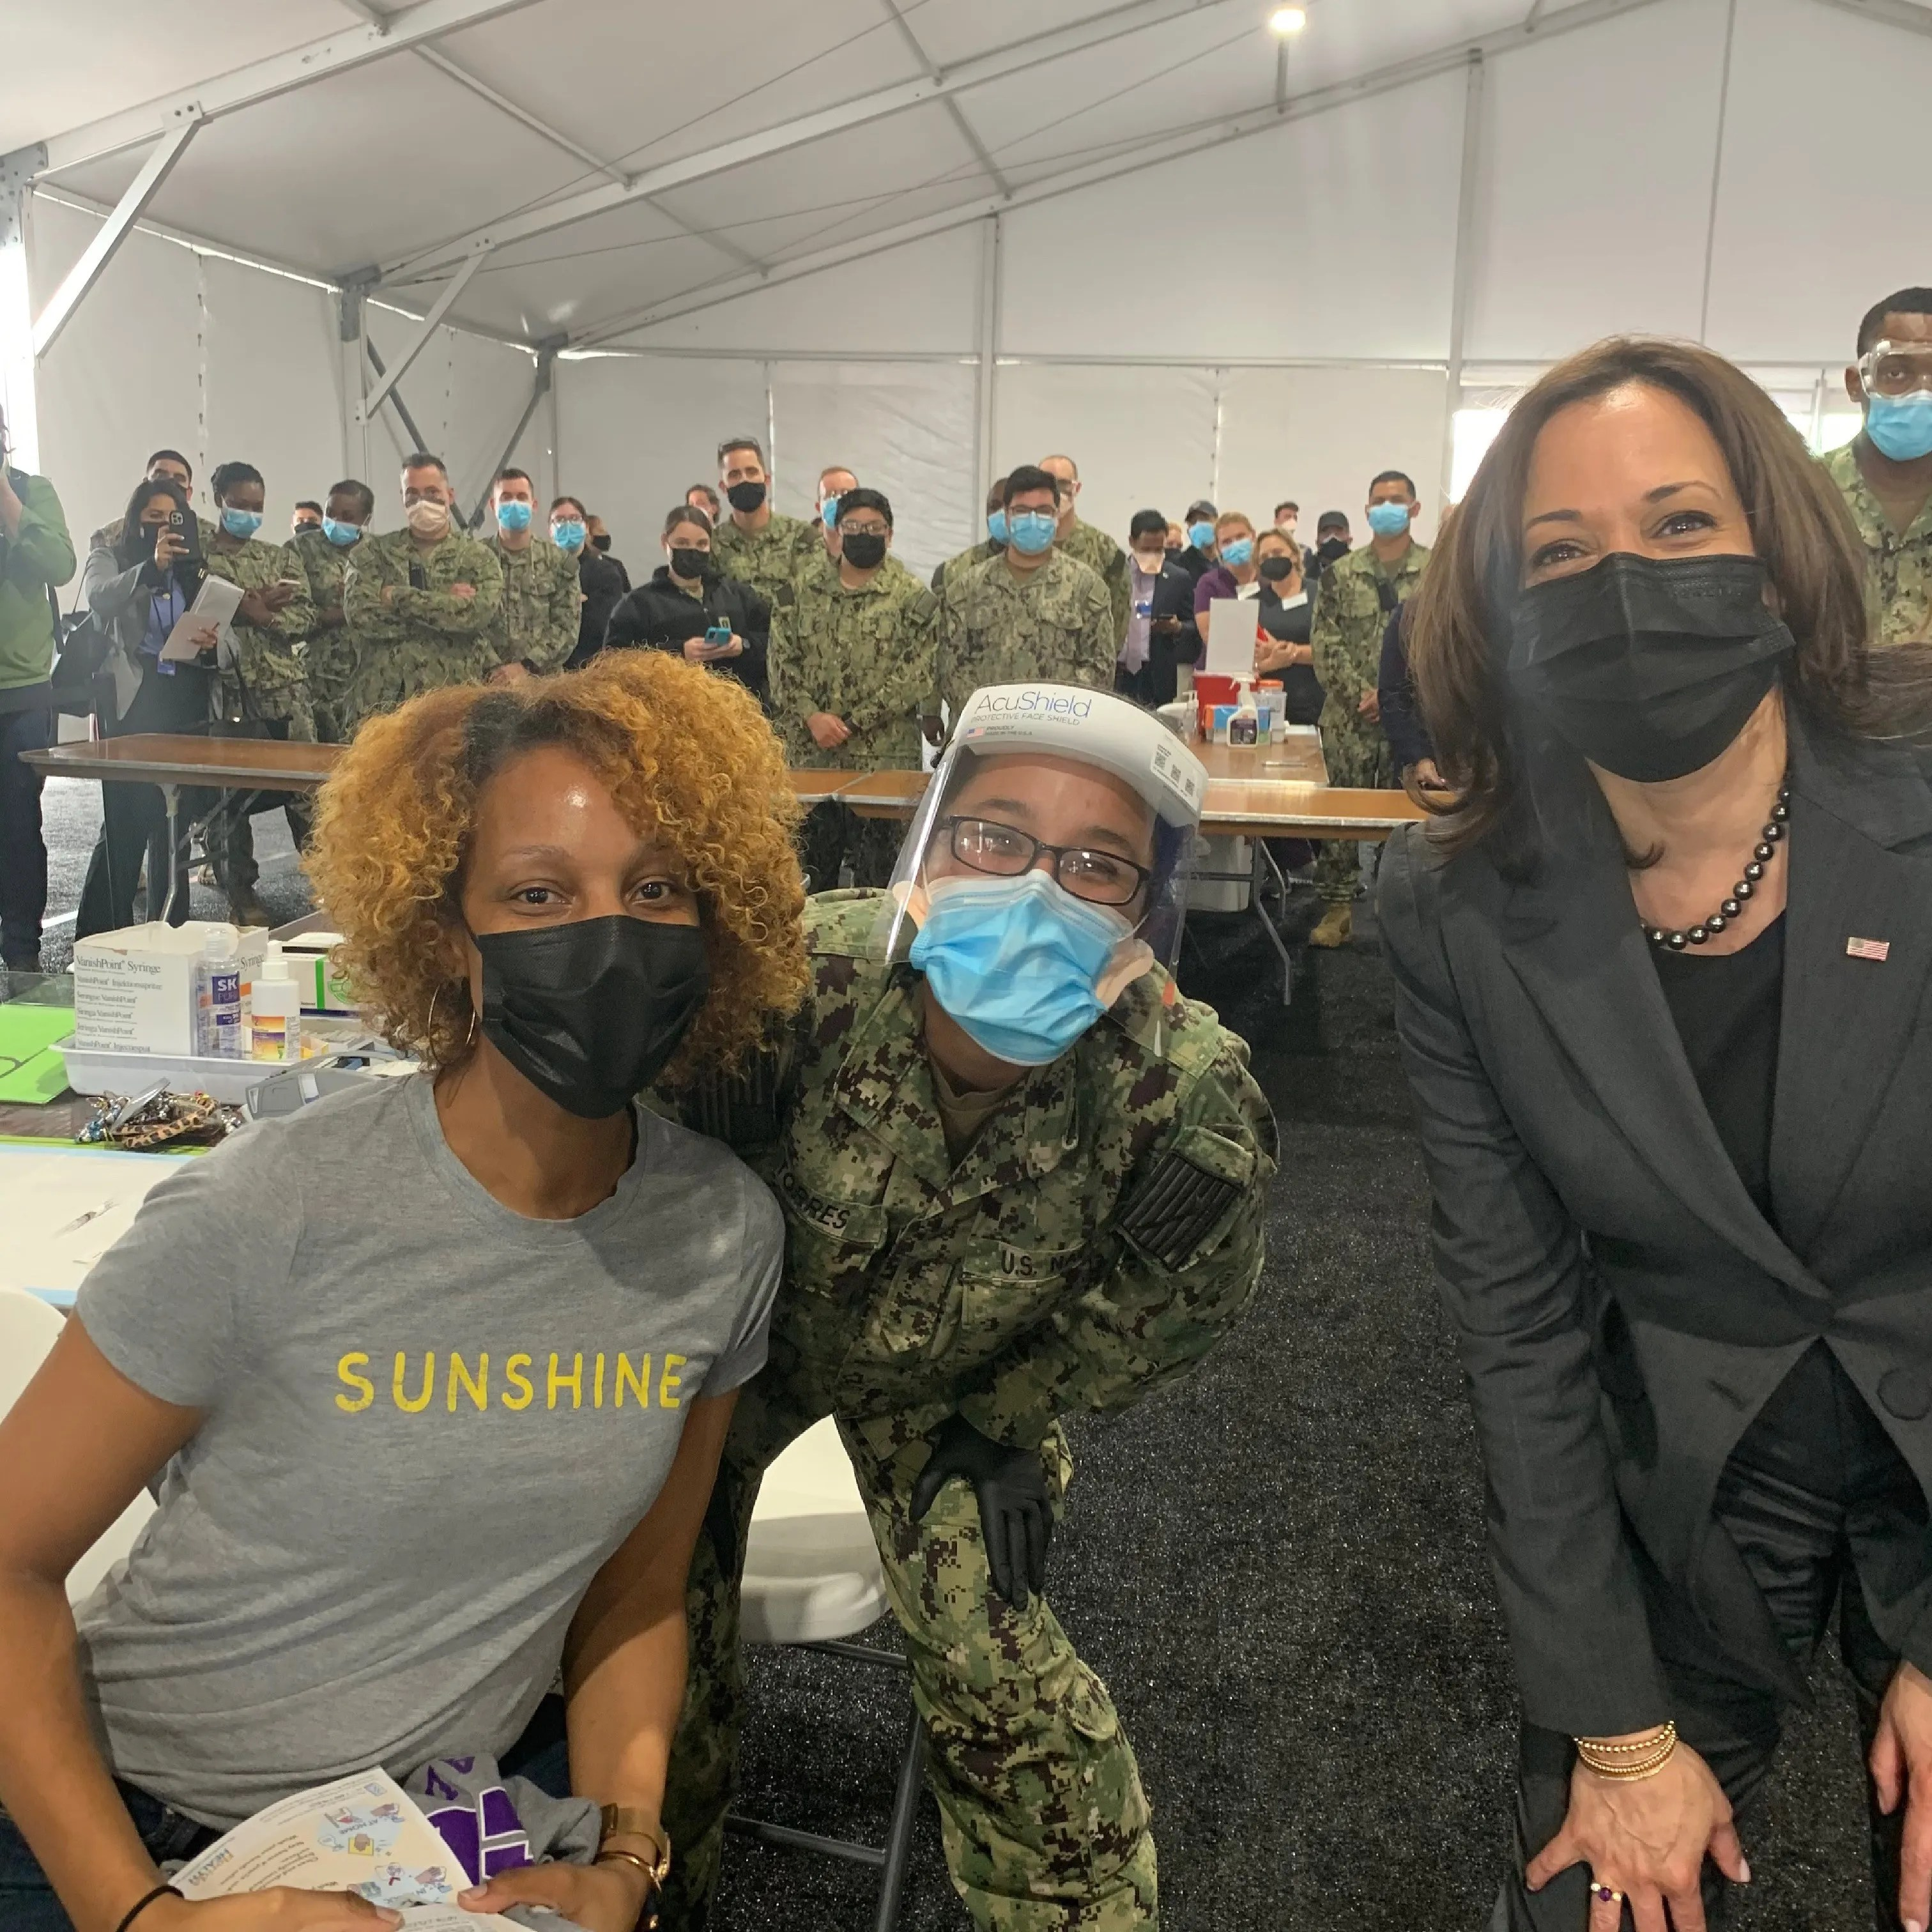 Shagara Bradshaw, left, met with Vice President Kamala Harris at a vaccination site in Jacksonville, Fla. On March 22, 2021.